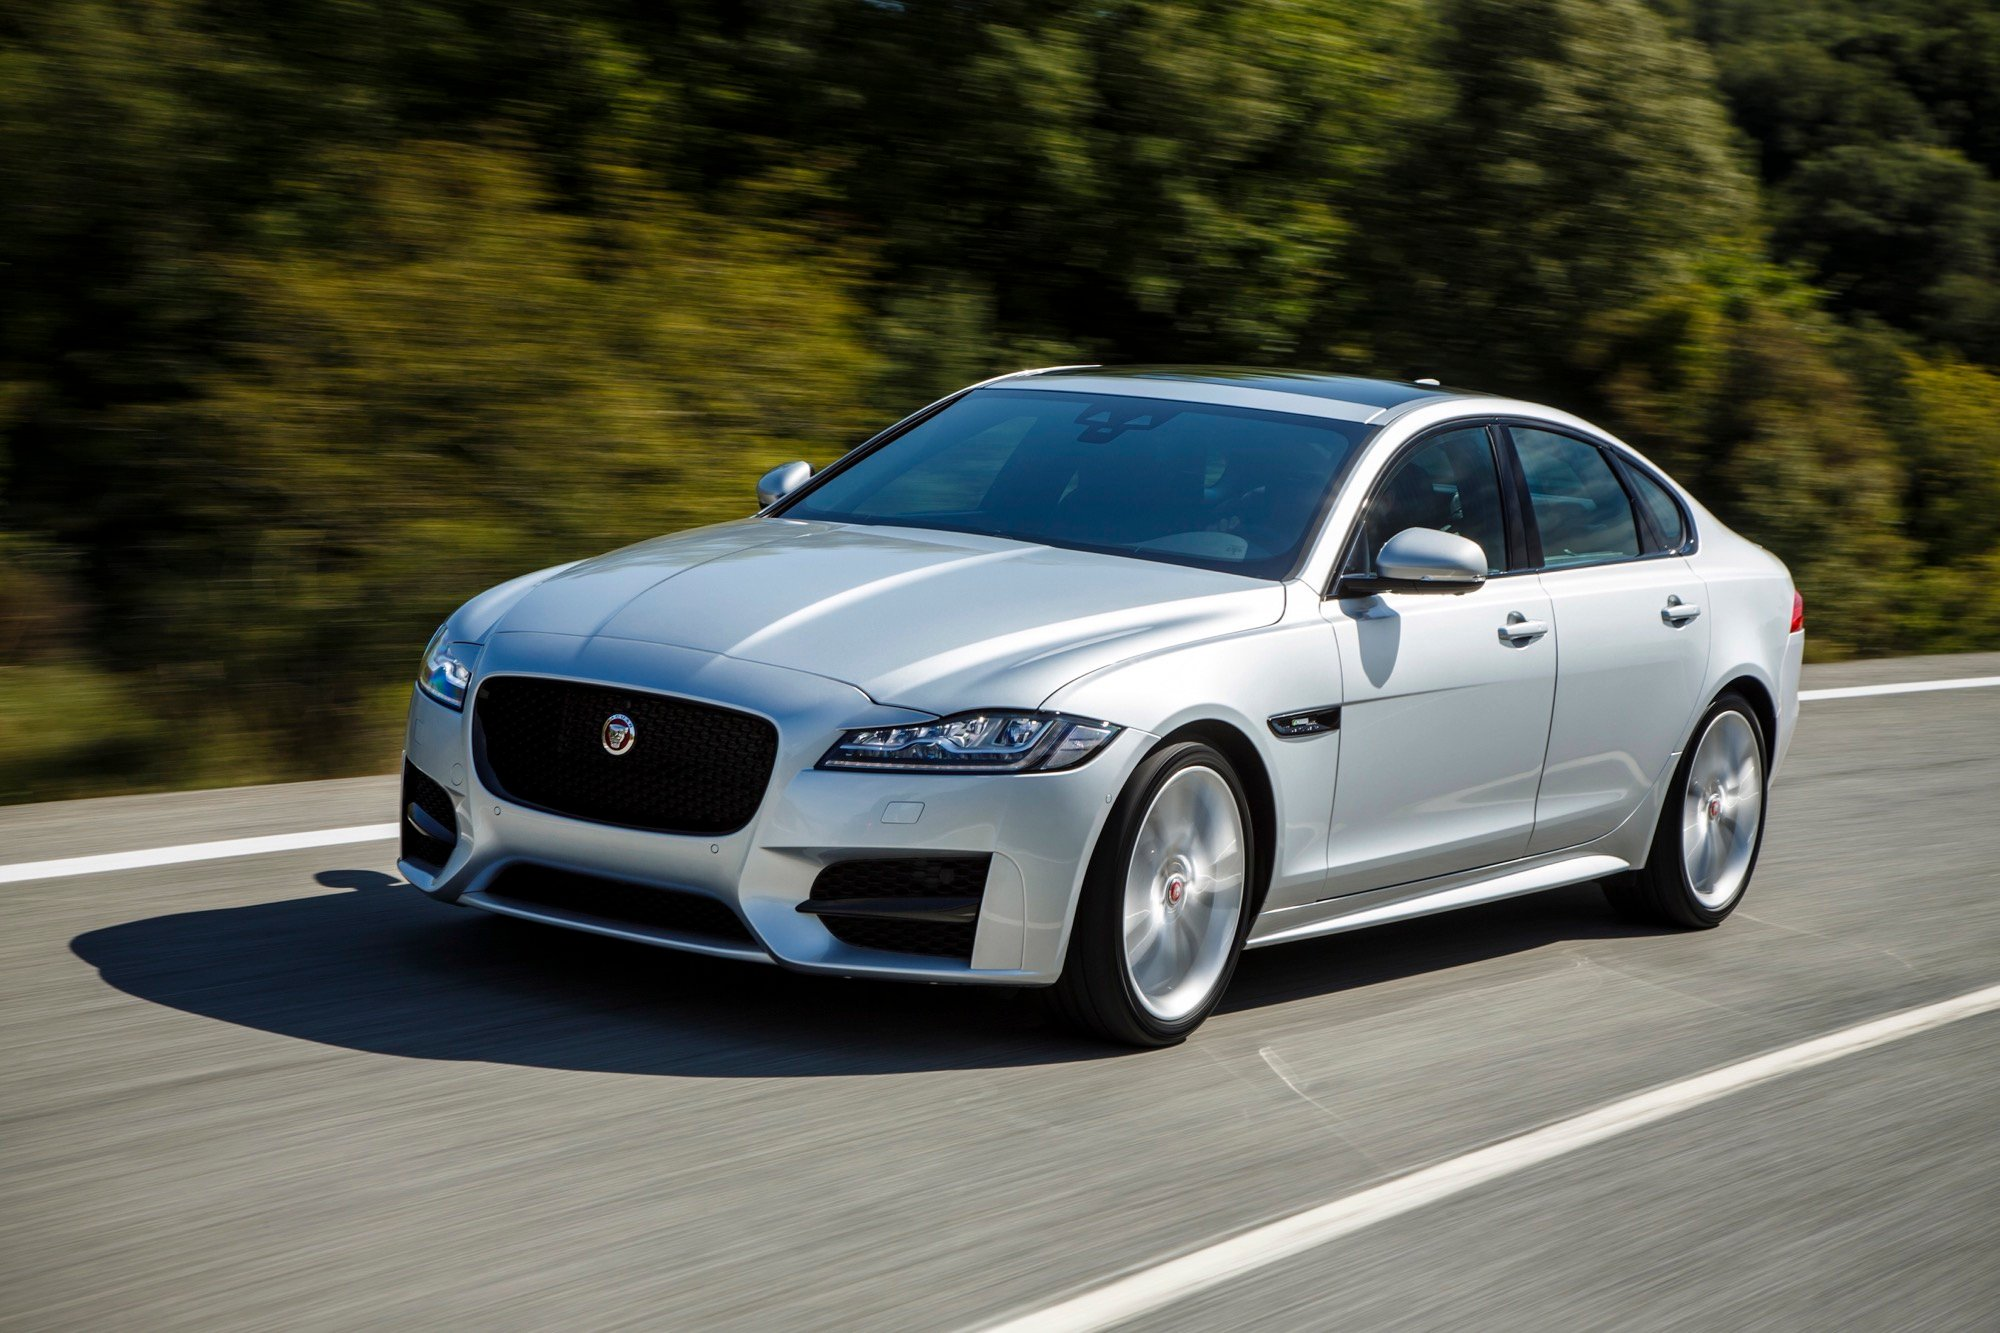 2010 Jaguar XF Expert Reviews Specs and Photos  Carscom